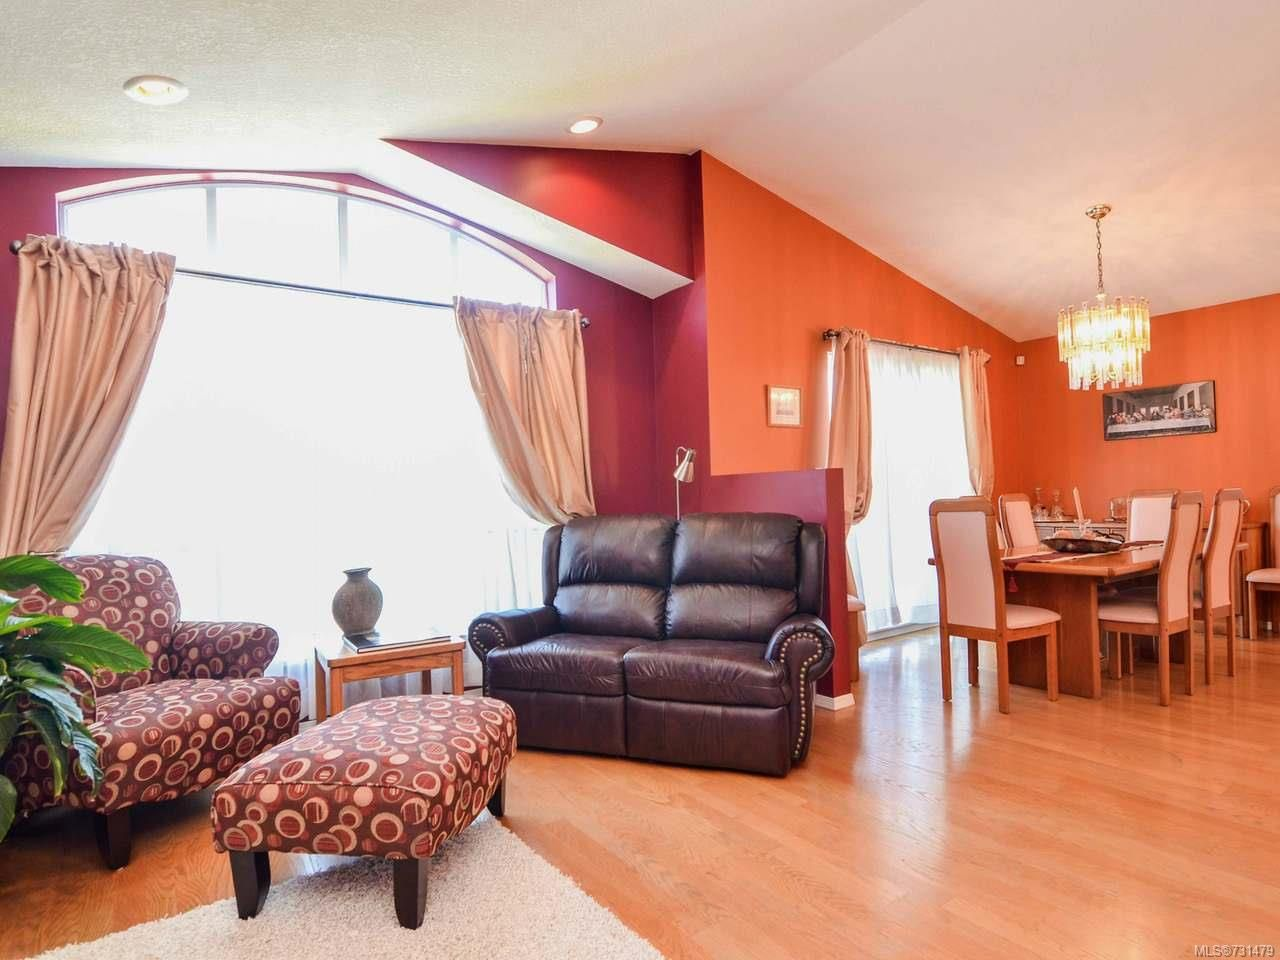 Photo 28: Photos: 753 Bowen Dr in CAMPBELL RIVER: CR Willow Point House for sale (Campbell River)  : MLS®# 731479